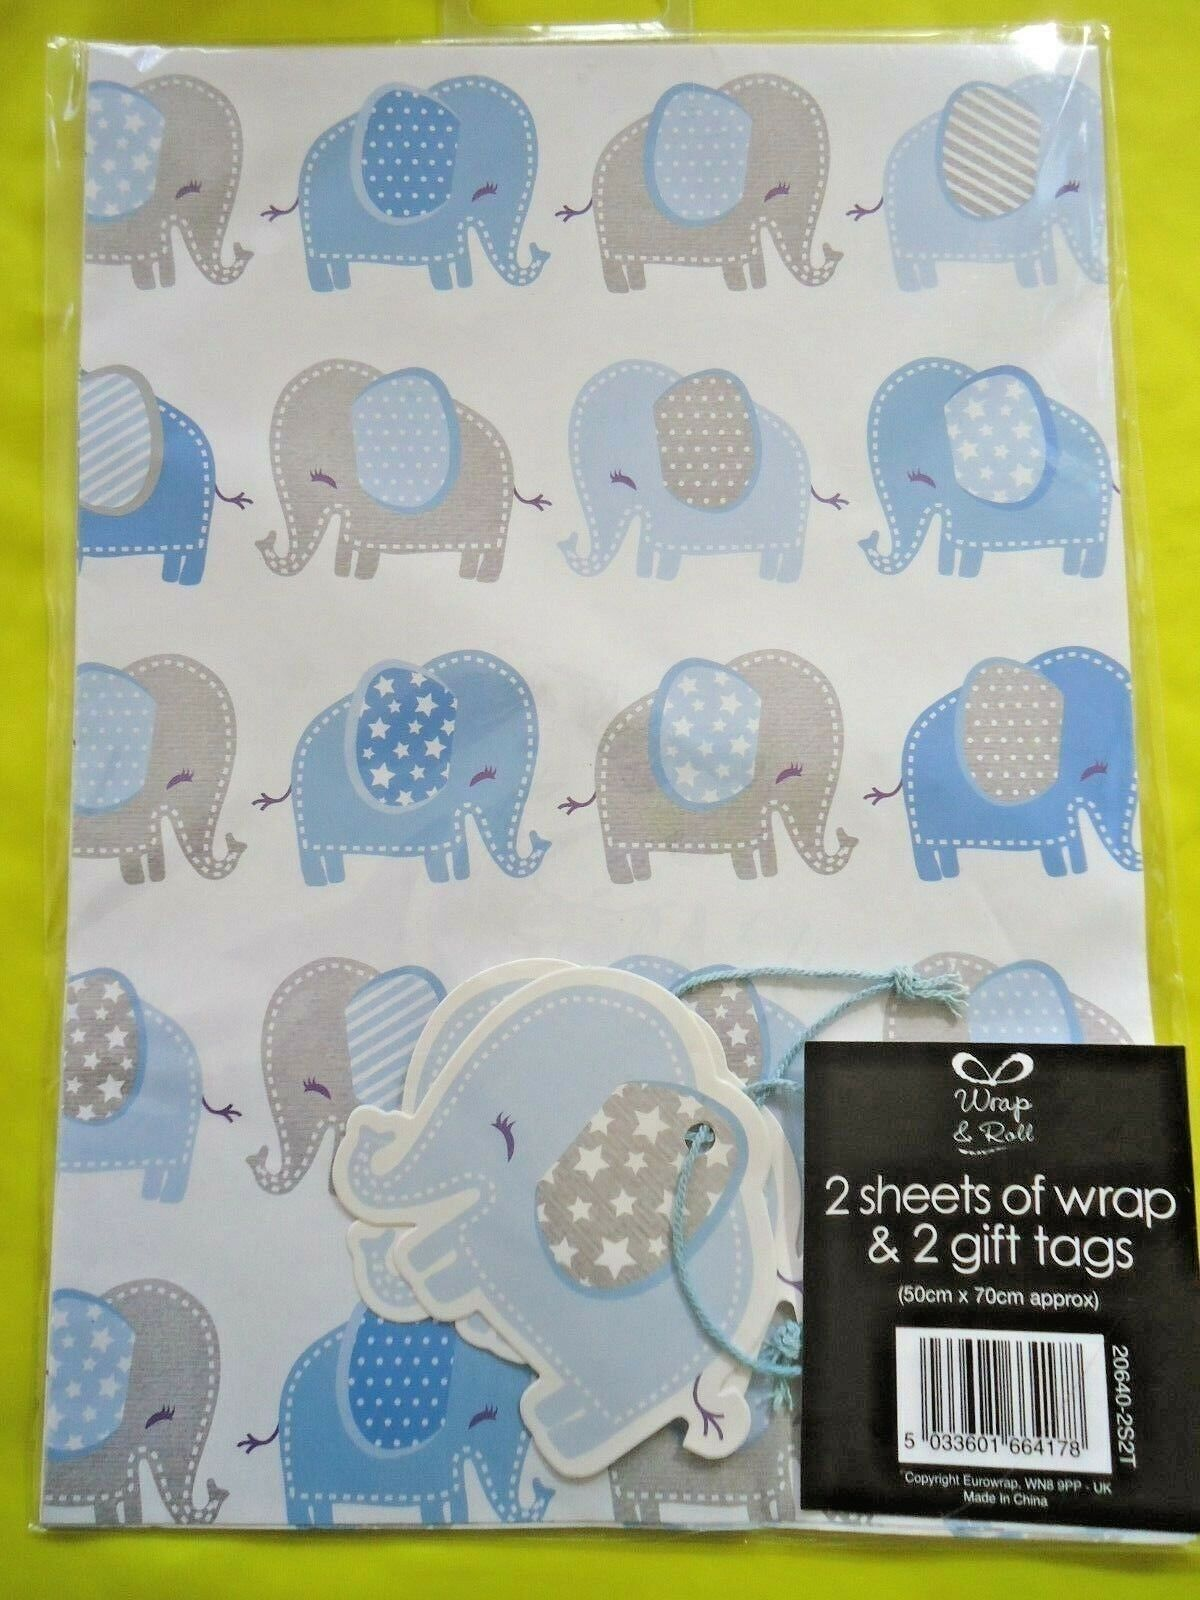 NEW BABY BOY GIFT WRAPPING PAPER - 2 SHEETS & 2 TAGS - Blau BIRTHDAY WRAP